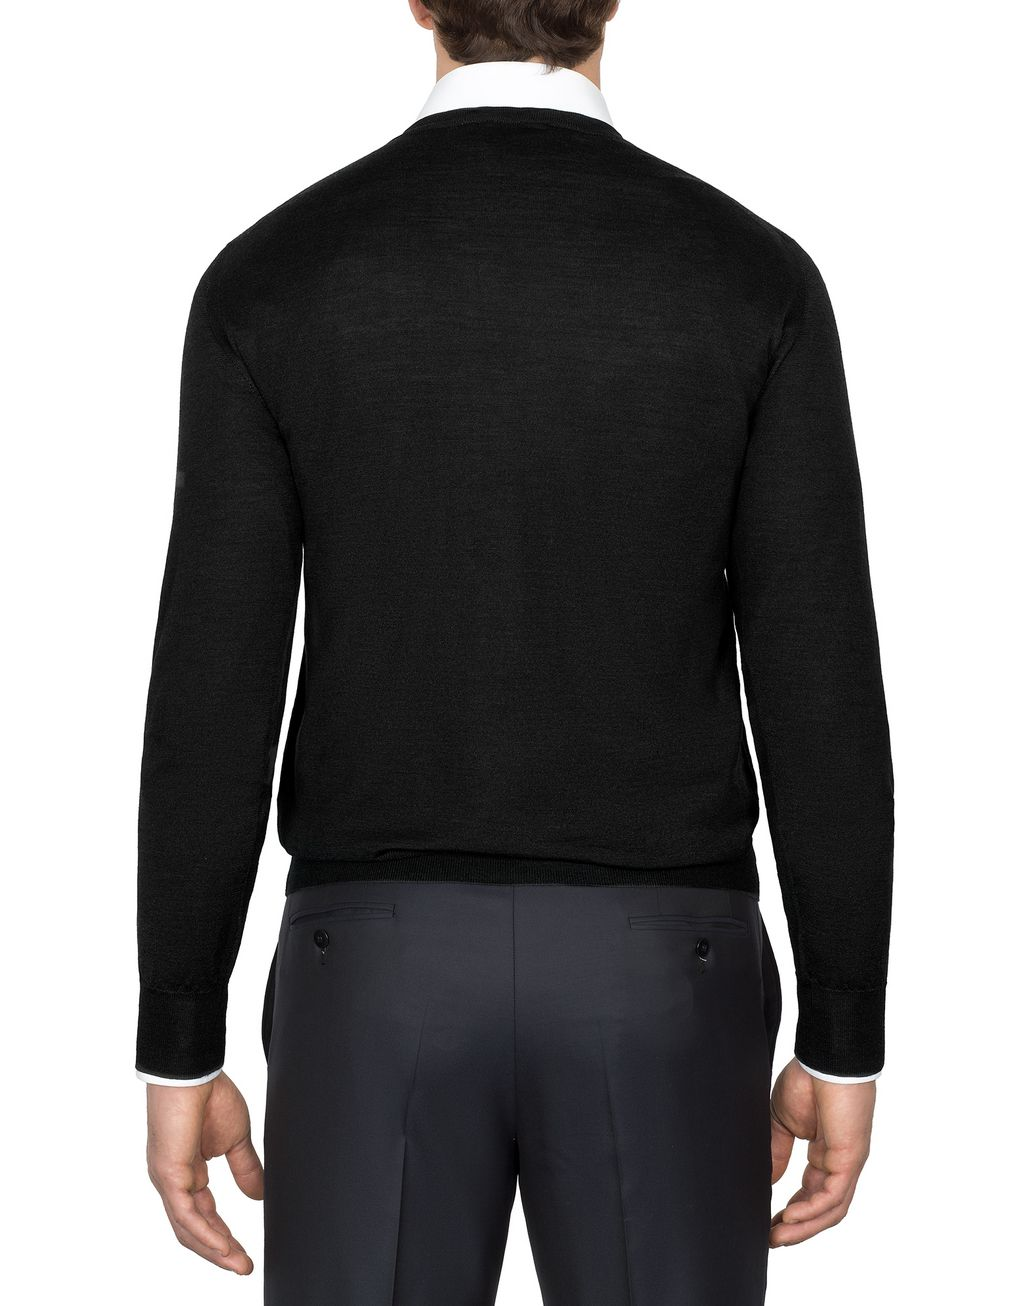 BRIONI 'Essential' Black V-Neck Sweater Knitwear [*** pickupInStoreShippingNotGuaranteed_info ***] d